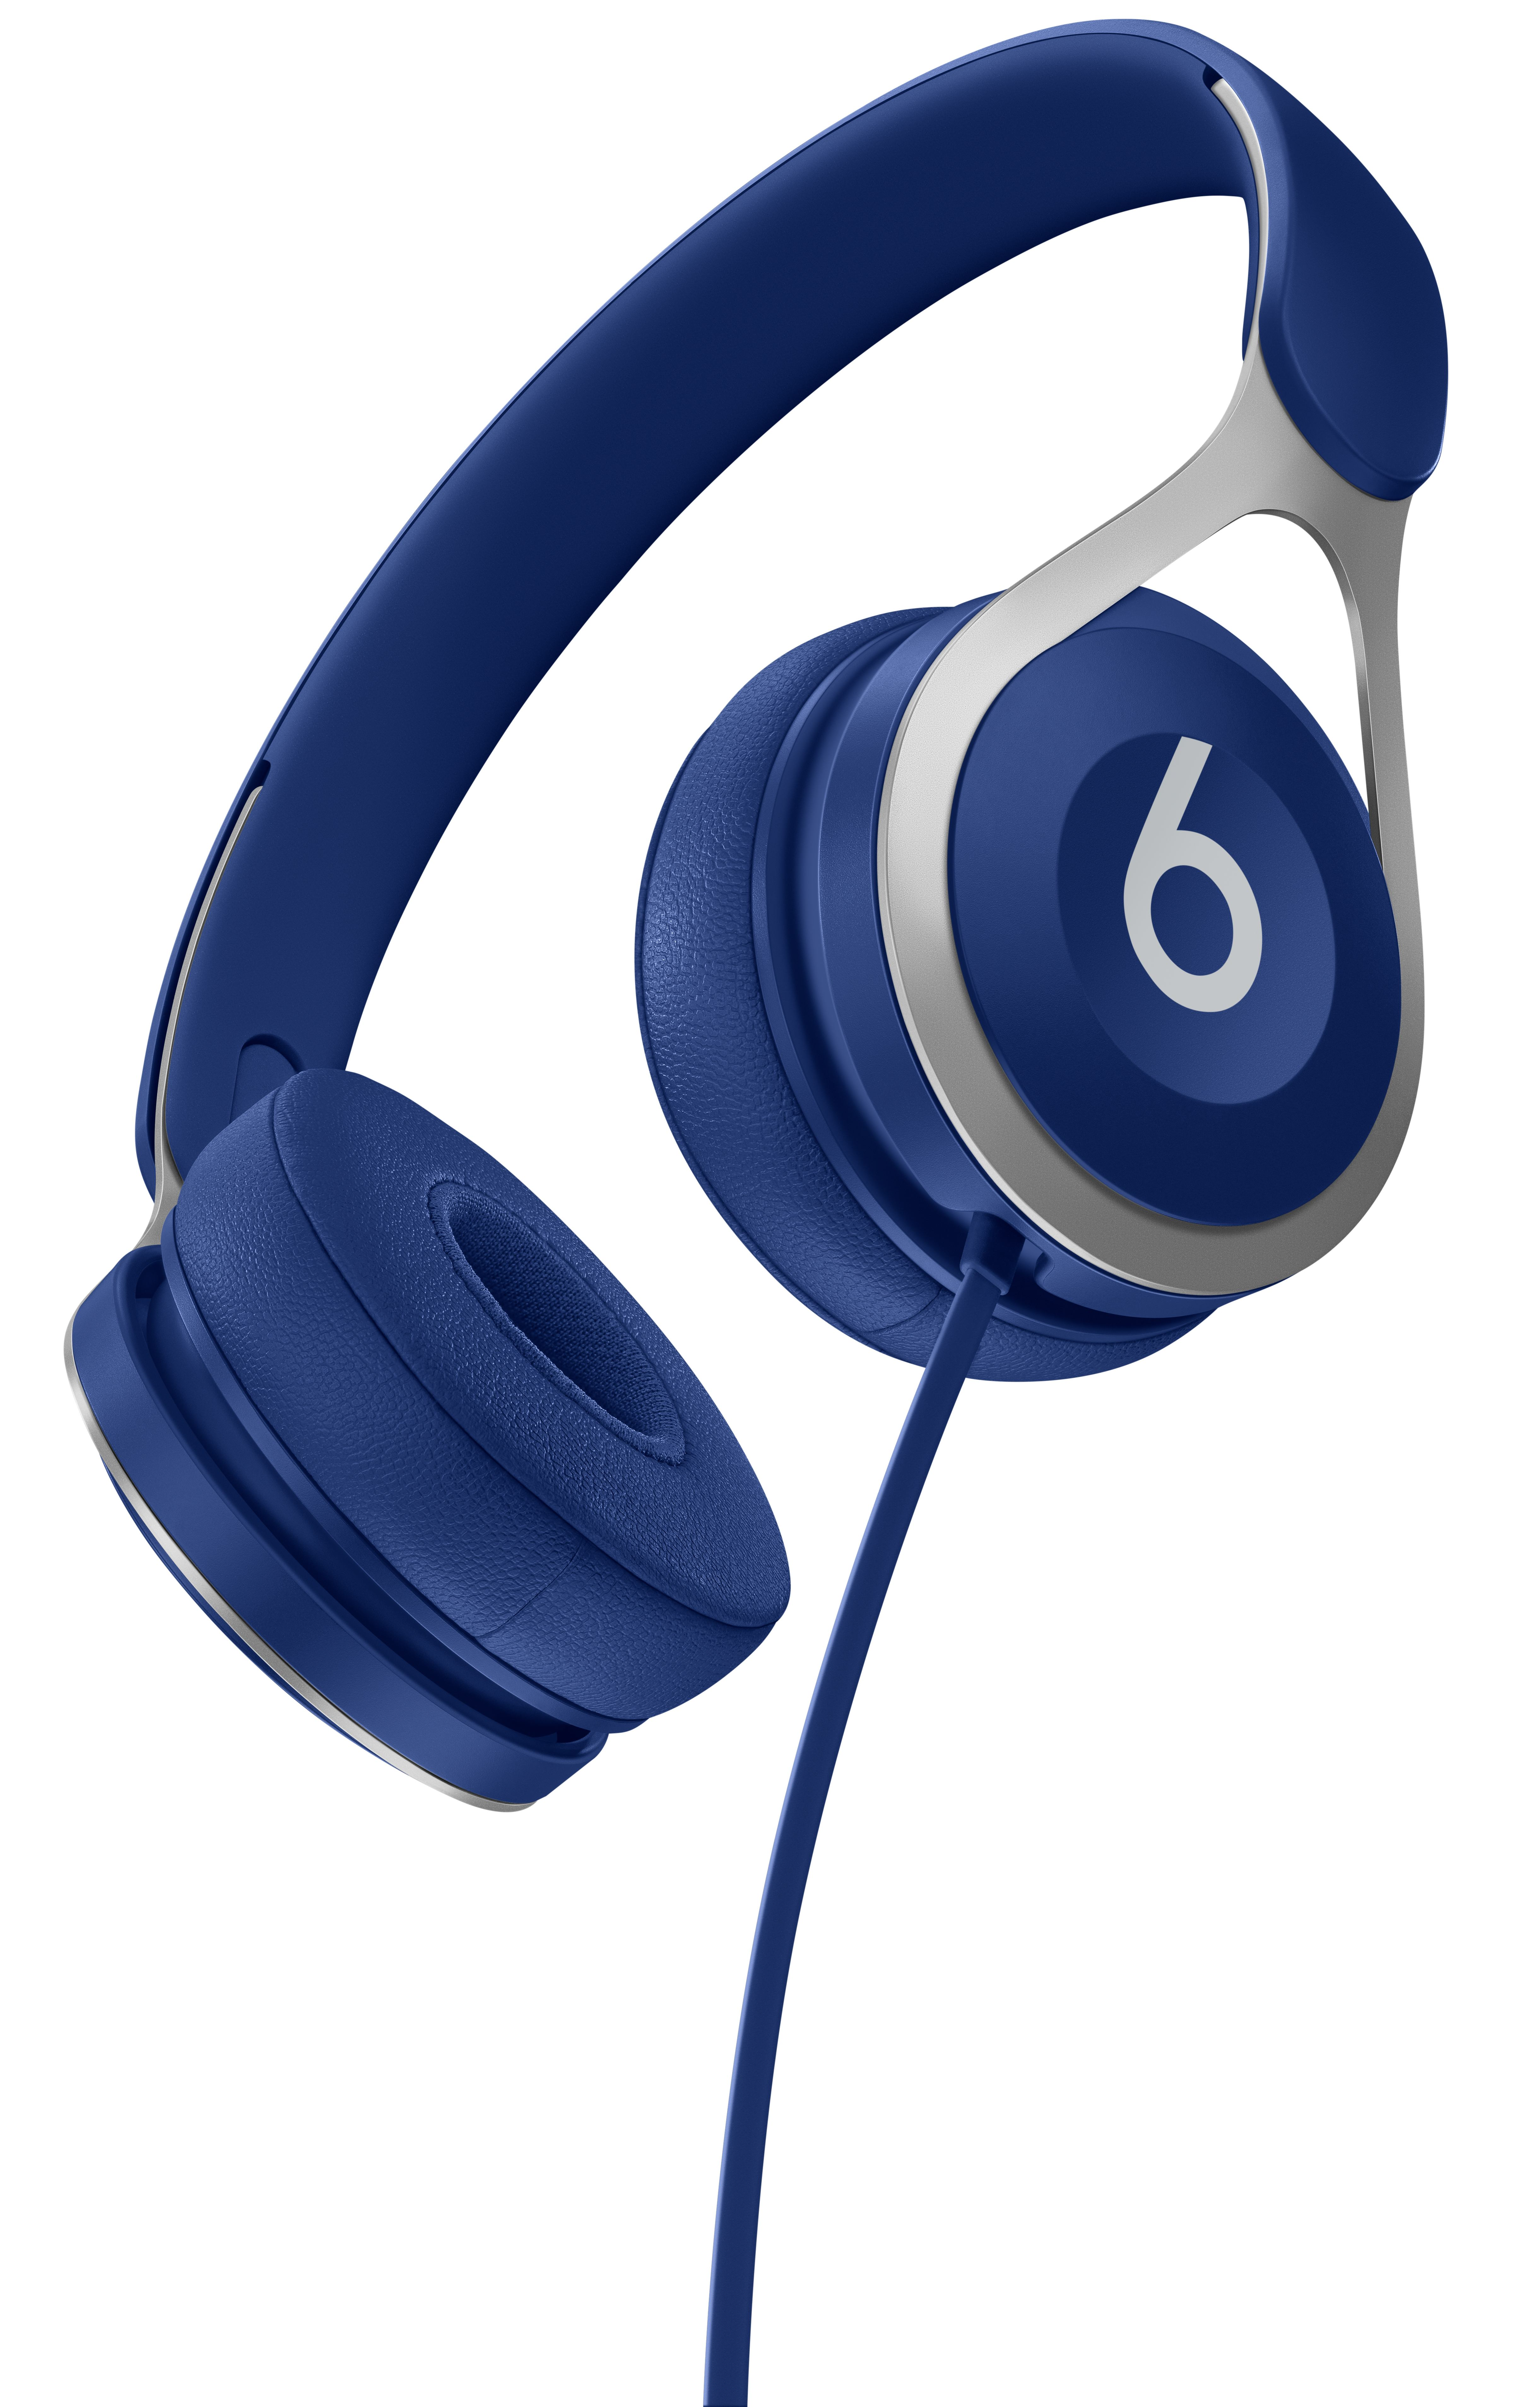 2022274-Beats-by-Dr-Dre-Beats-EP-Cuffia-Padiglione-auricolare-Blu-Beats-EP-On